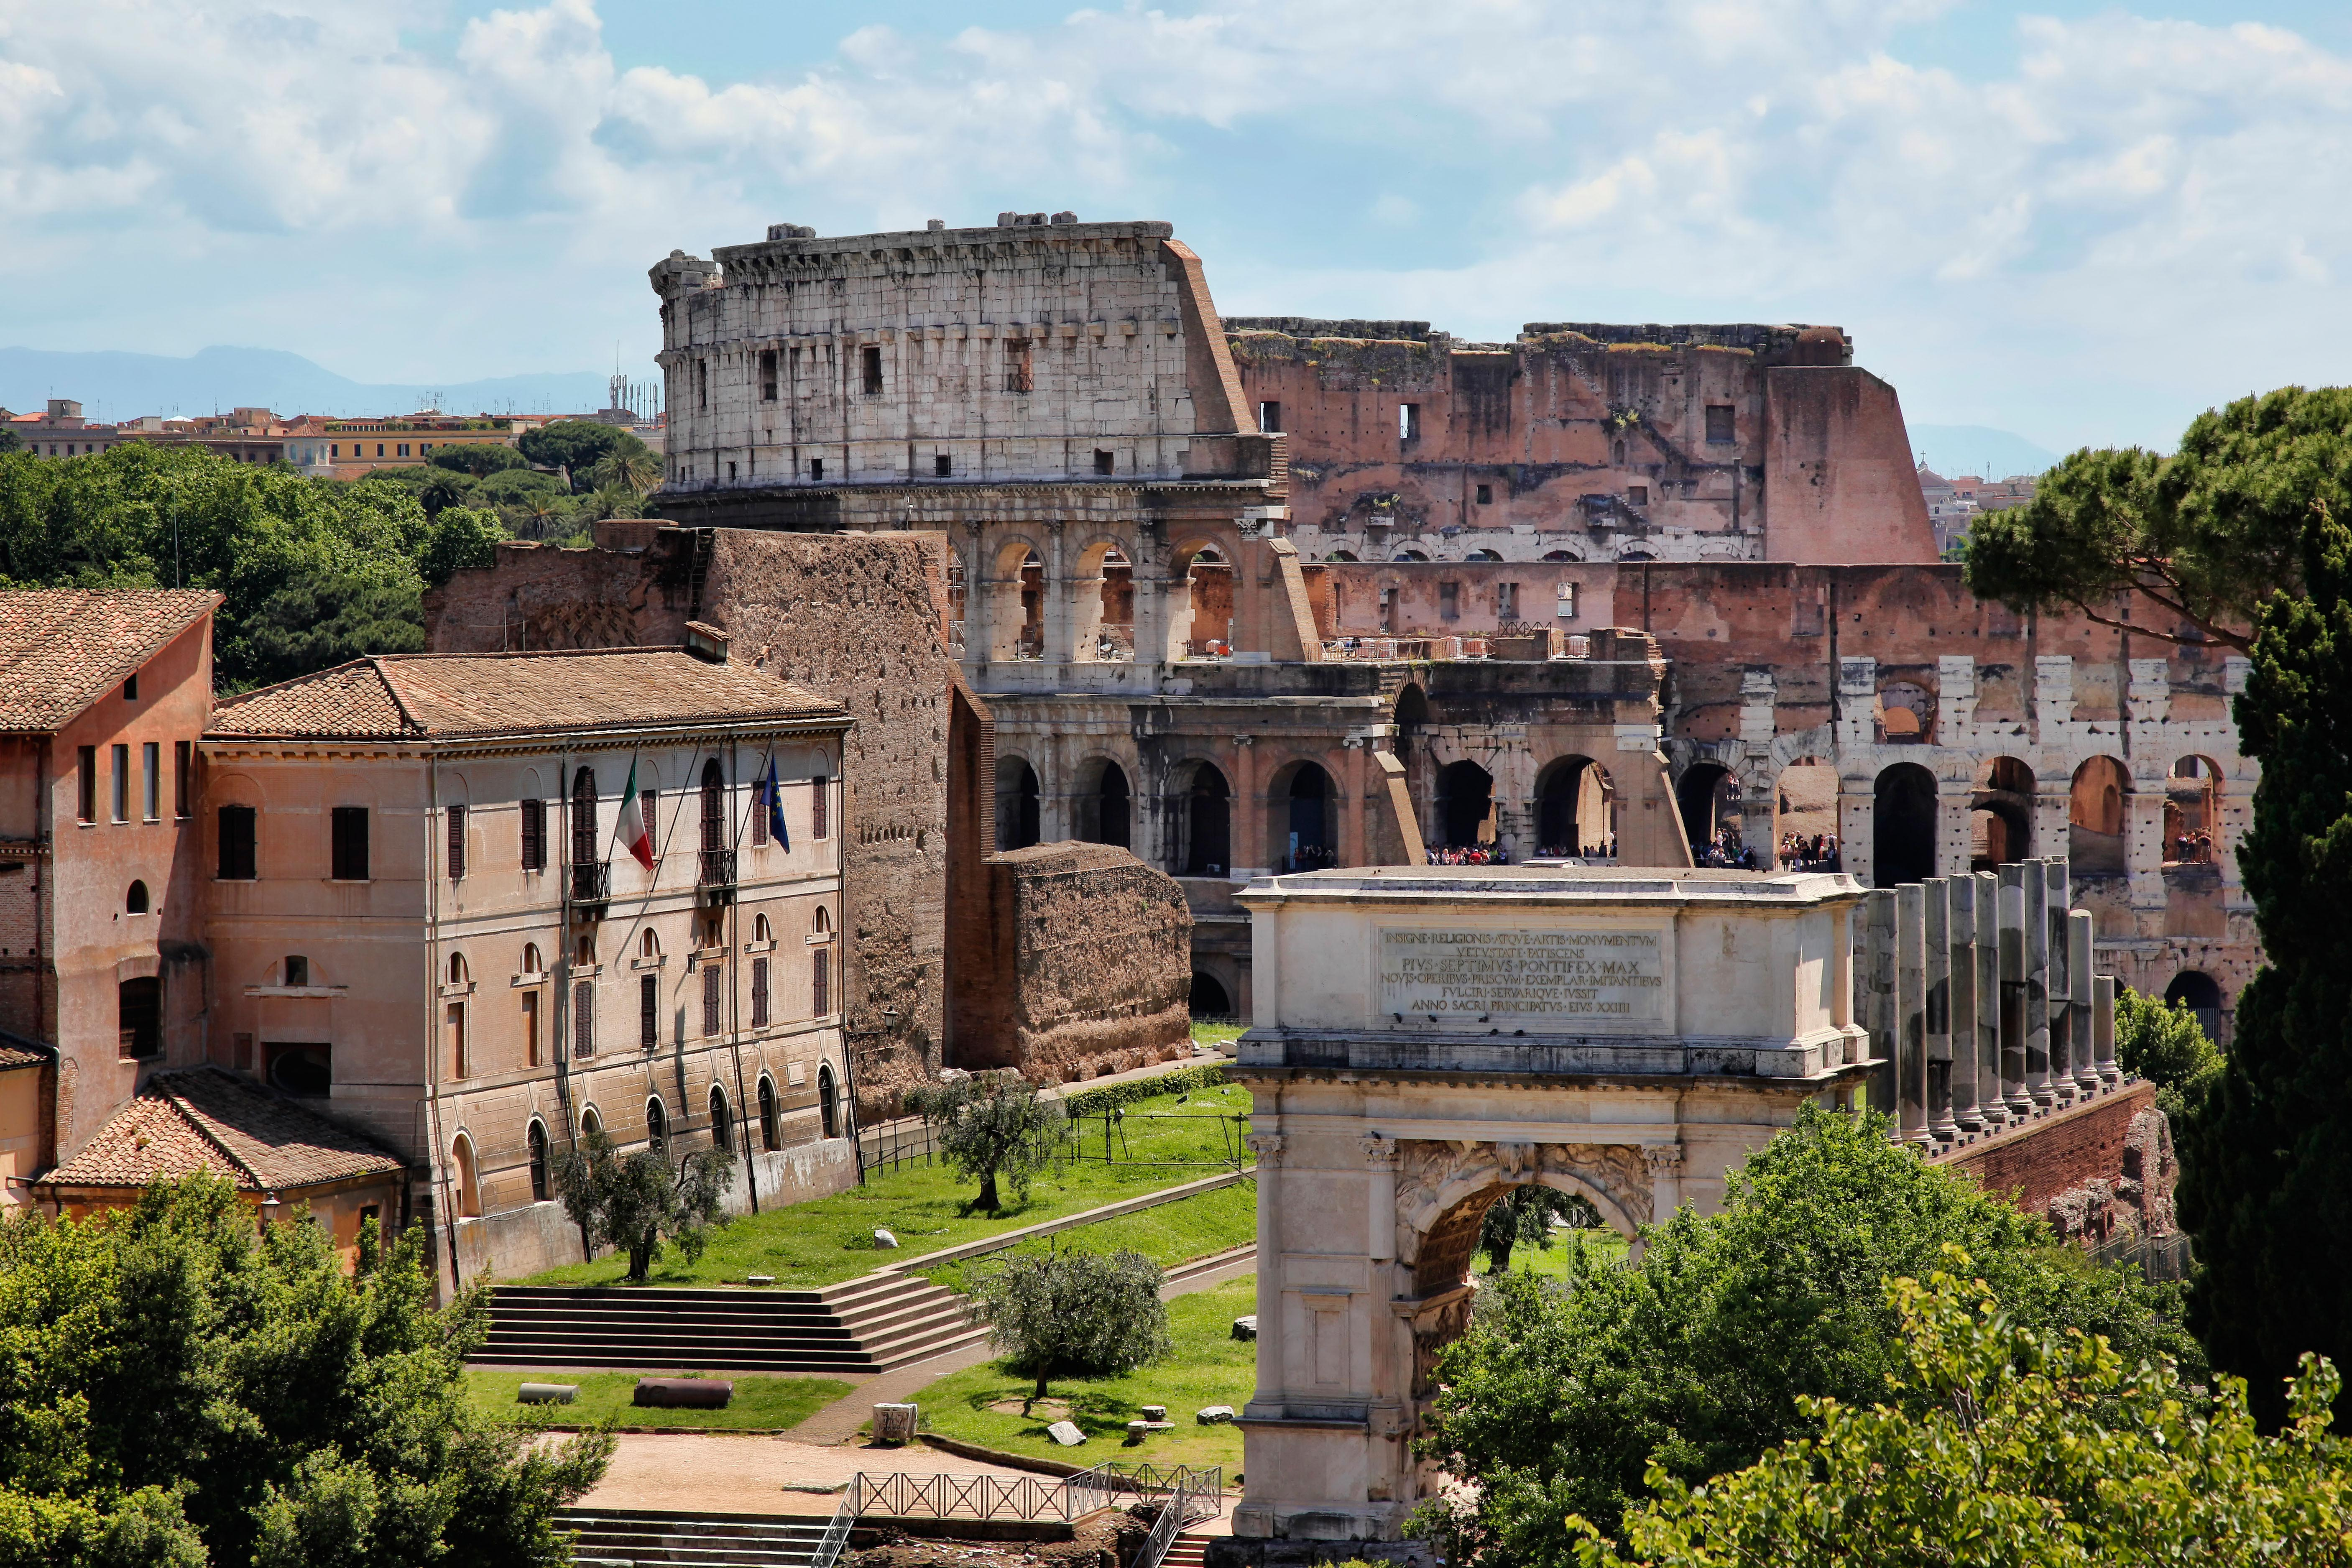 View of the colosseum in Rome from the Palatine Hill in the Forum